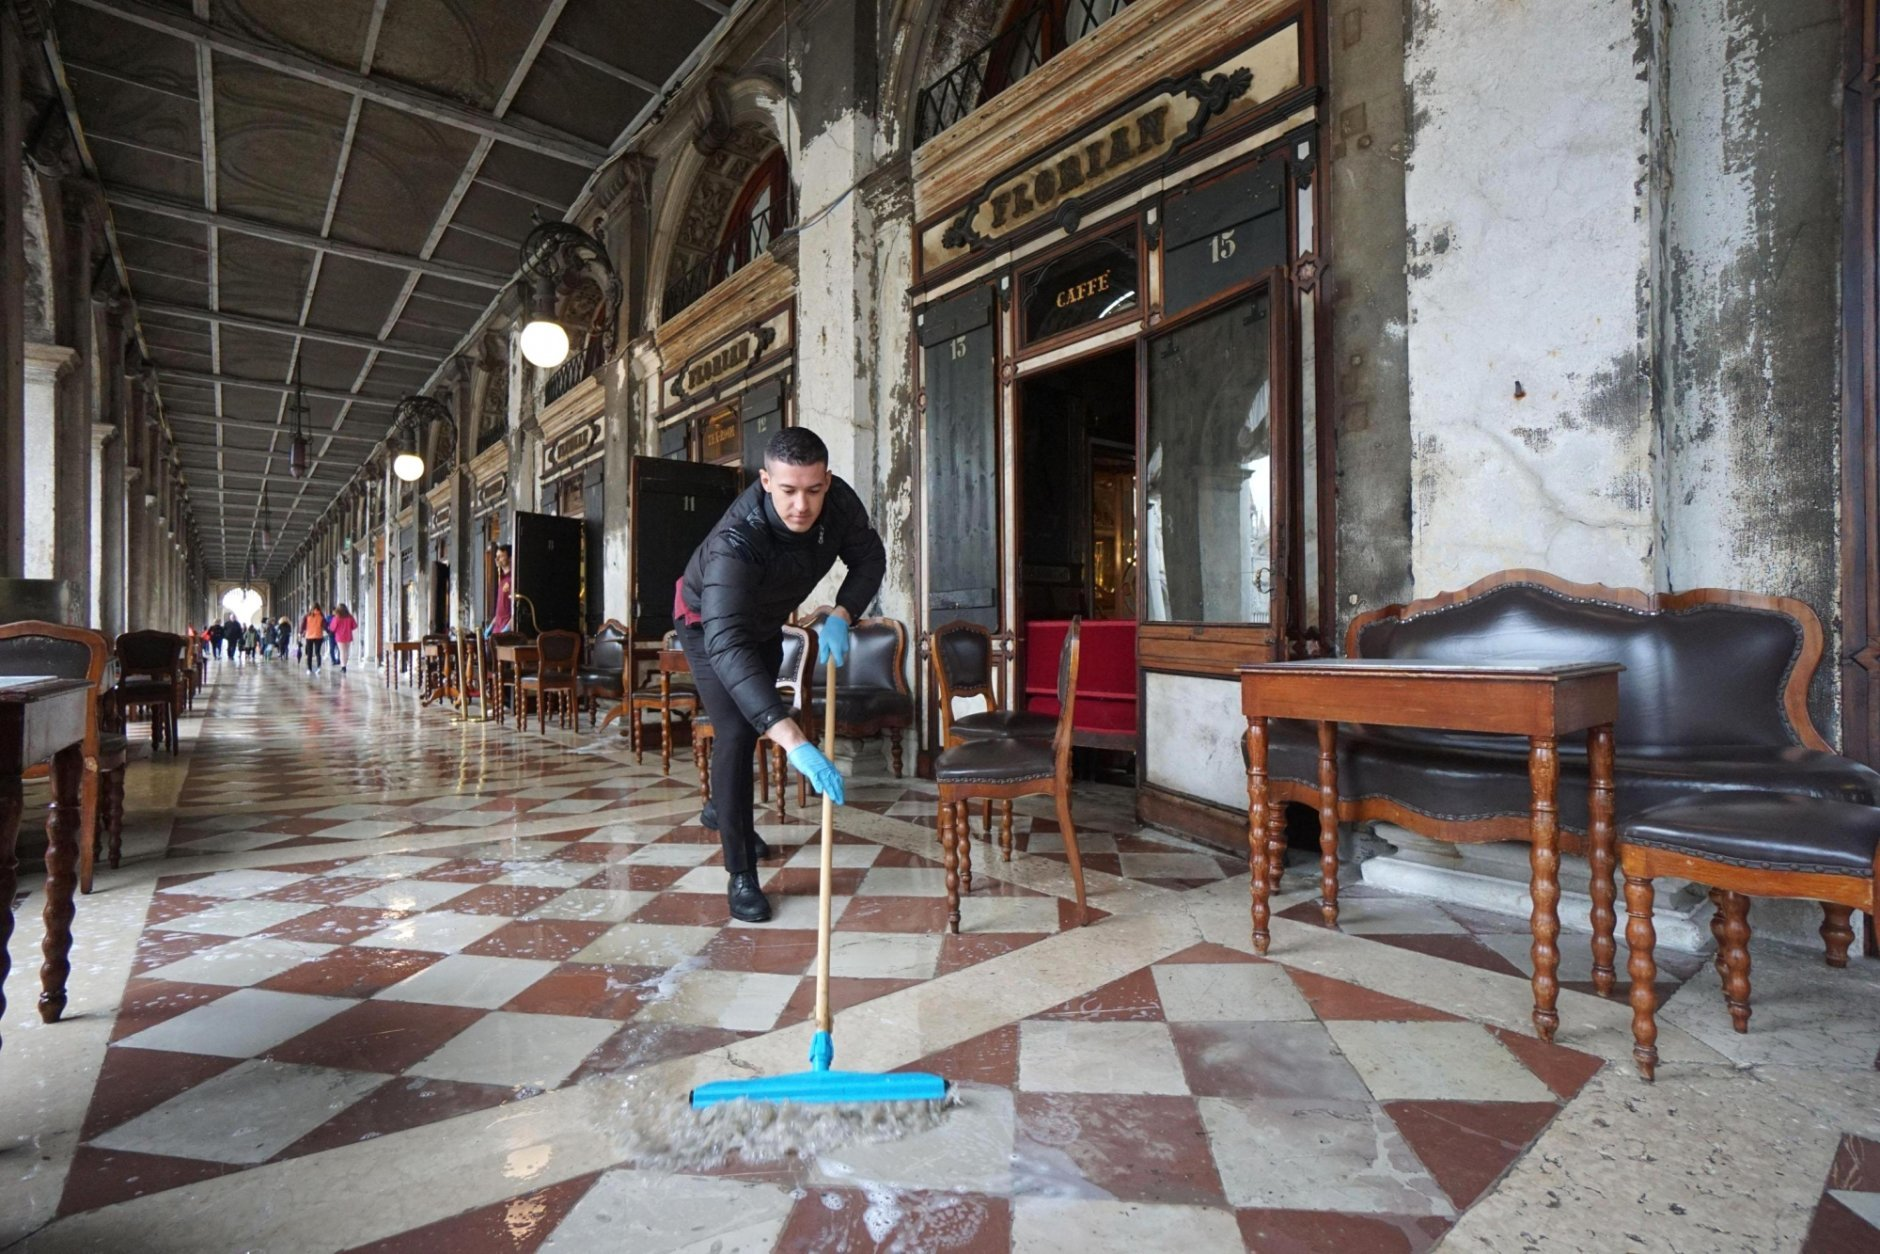 A man brushes away floodwater outside the historic Caffe Florian, in San Marco Square, in Venice, Italy, Tuesday, Oct.30 2018. High winds created an exceptional tide in Venice on Monday, covering three-quarters of the city for the first time in a decade. Water levels were forecast Tuesday at 110 centimeters (43.3 inches), flooding 12 percent of the famed lagoon city. (Andrea Merola/ANSA via AP)